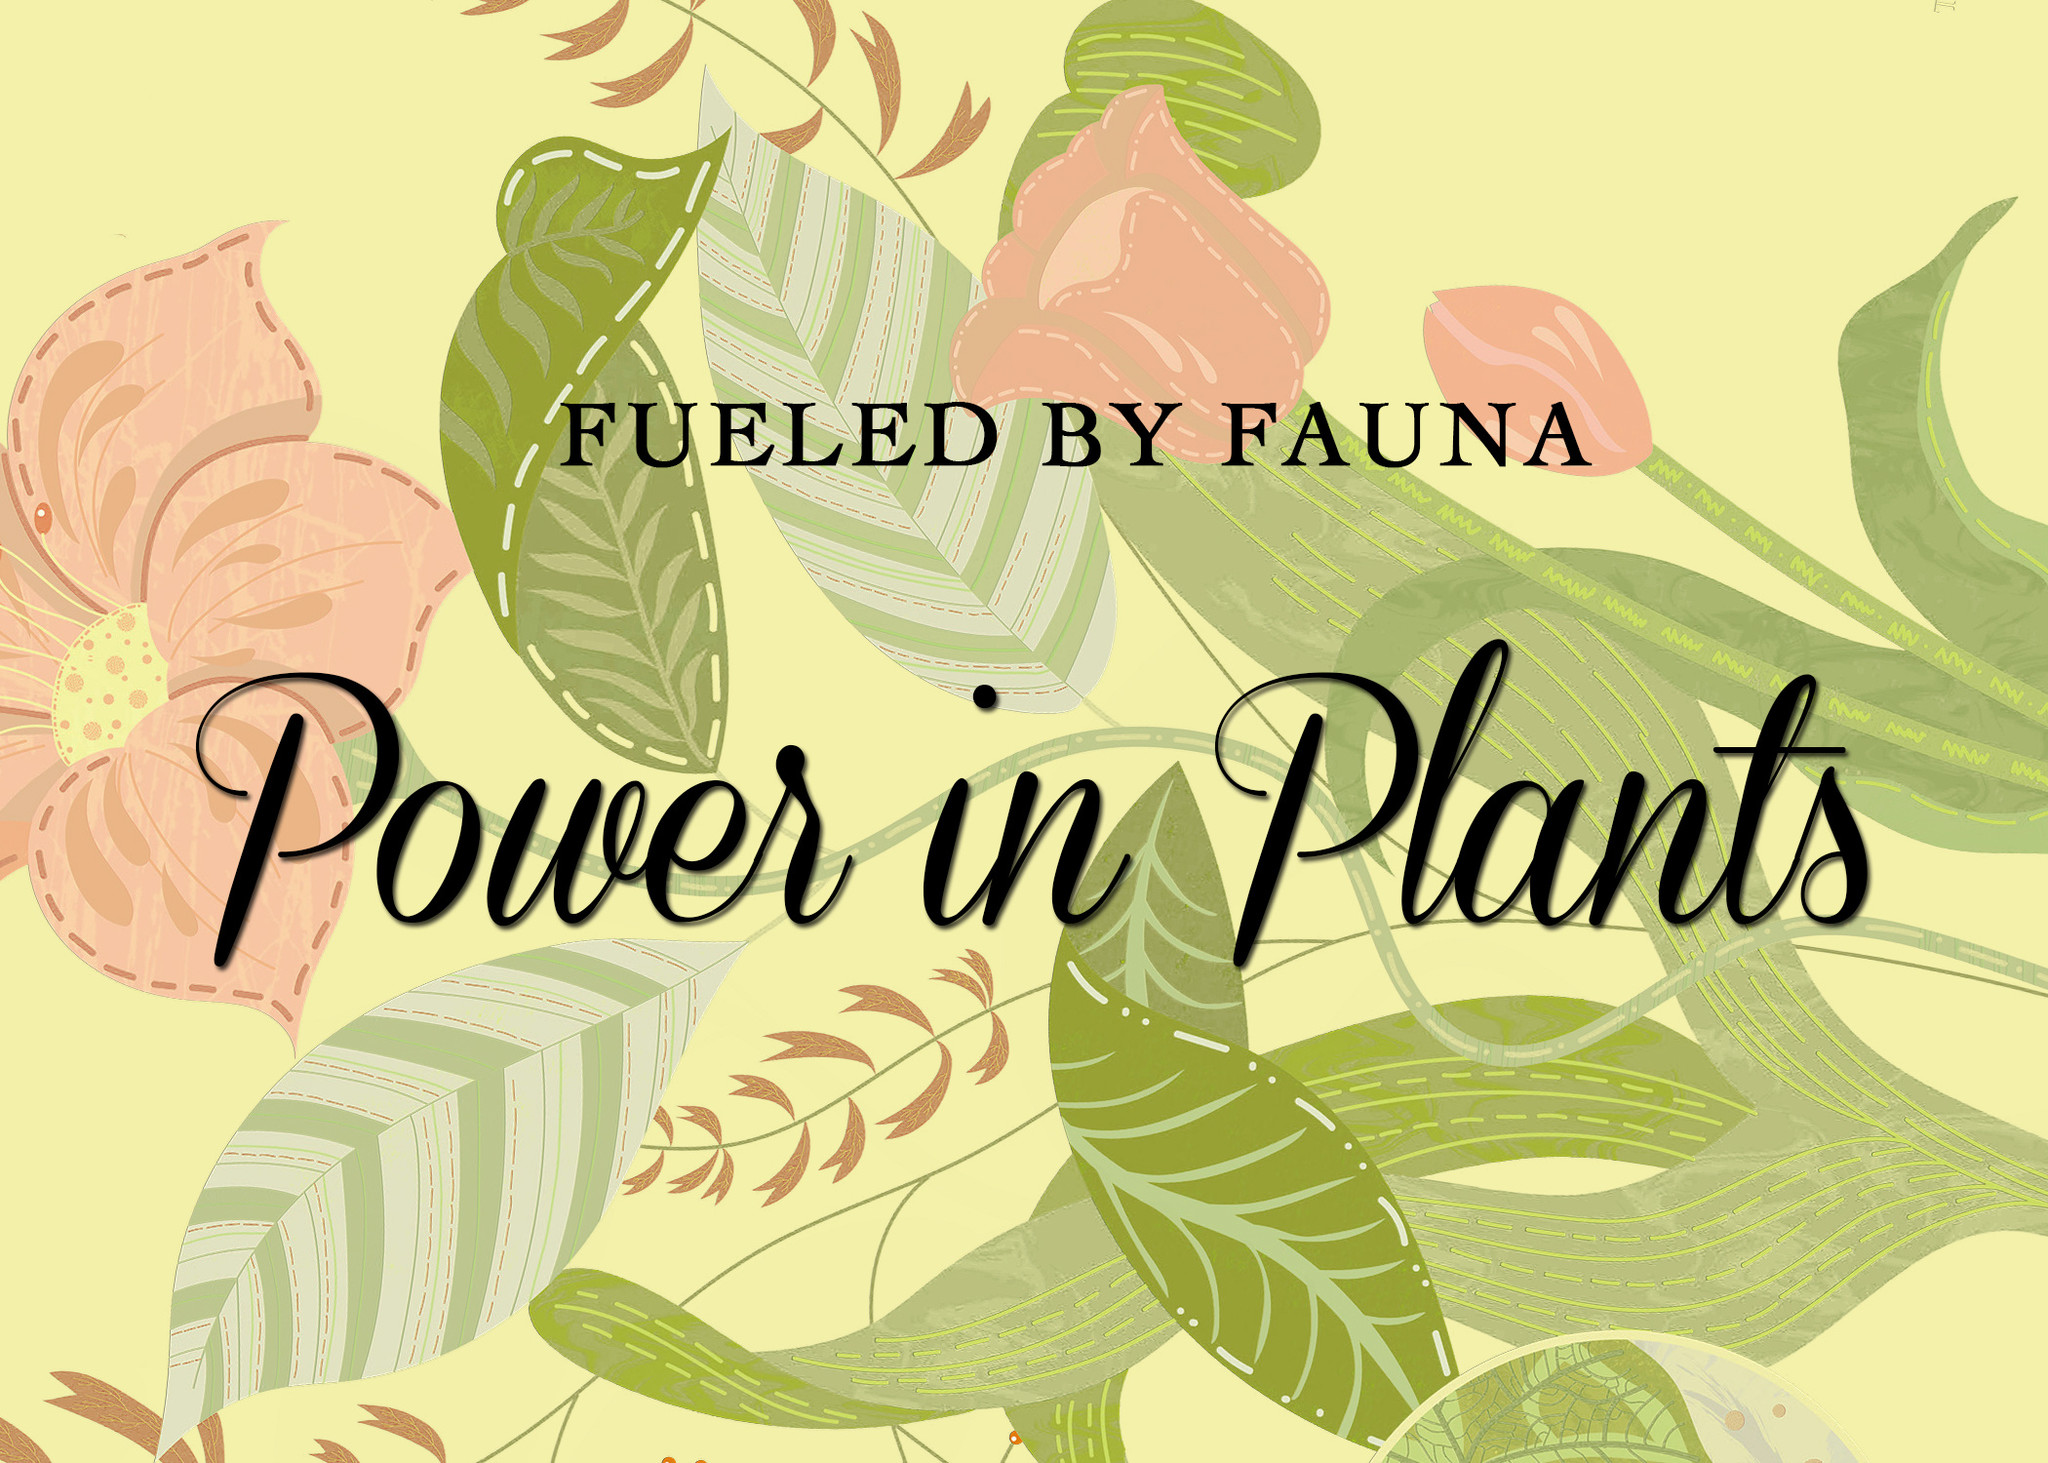 Fueled By Fauna: The Power of Plants